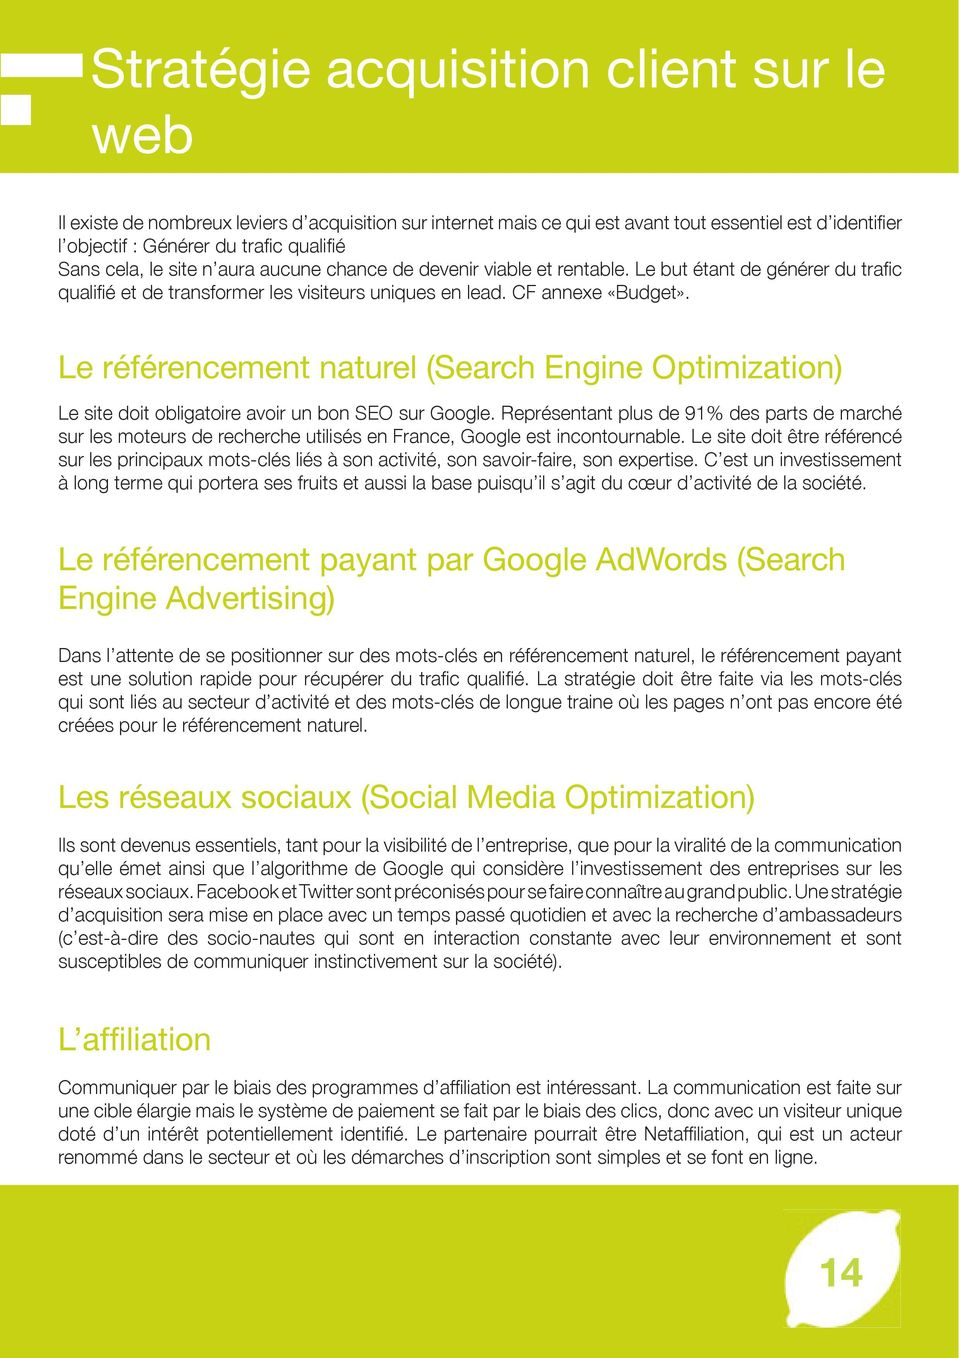 Le référencement naturel (Search Engine Optimization) Le site doit obligatoire avoir un bon SEO sur Google.